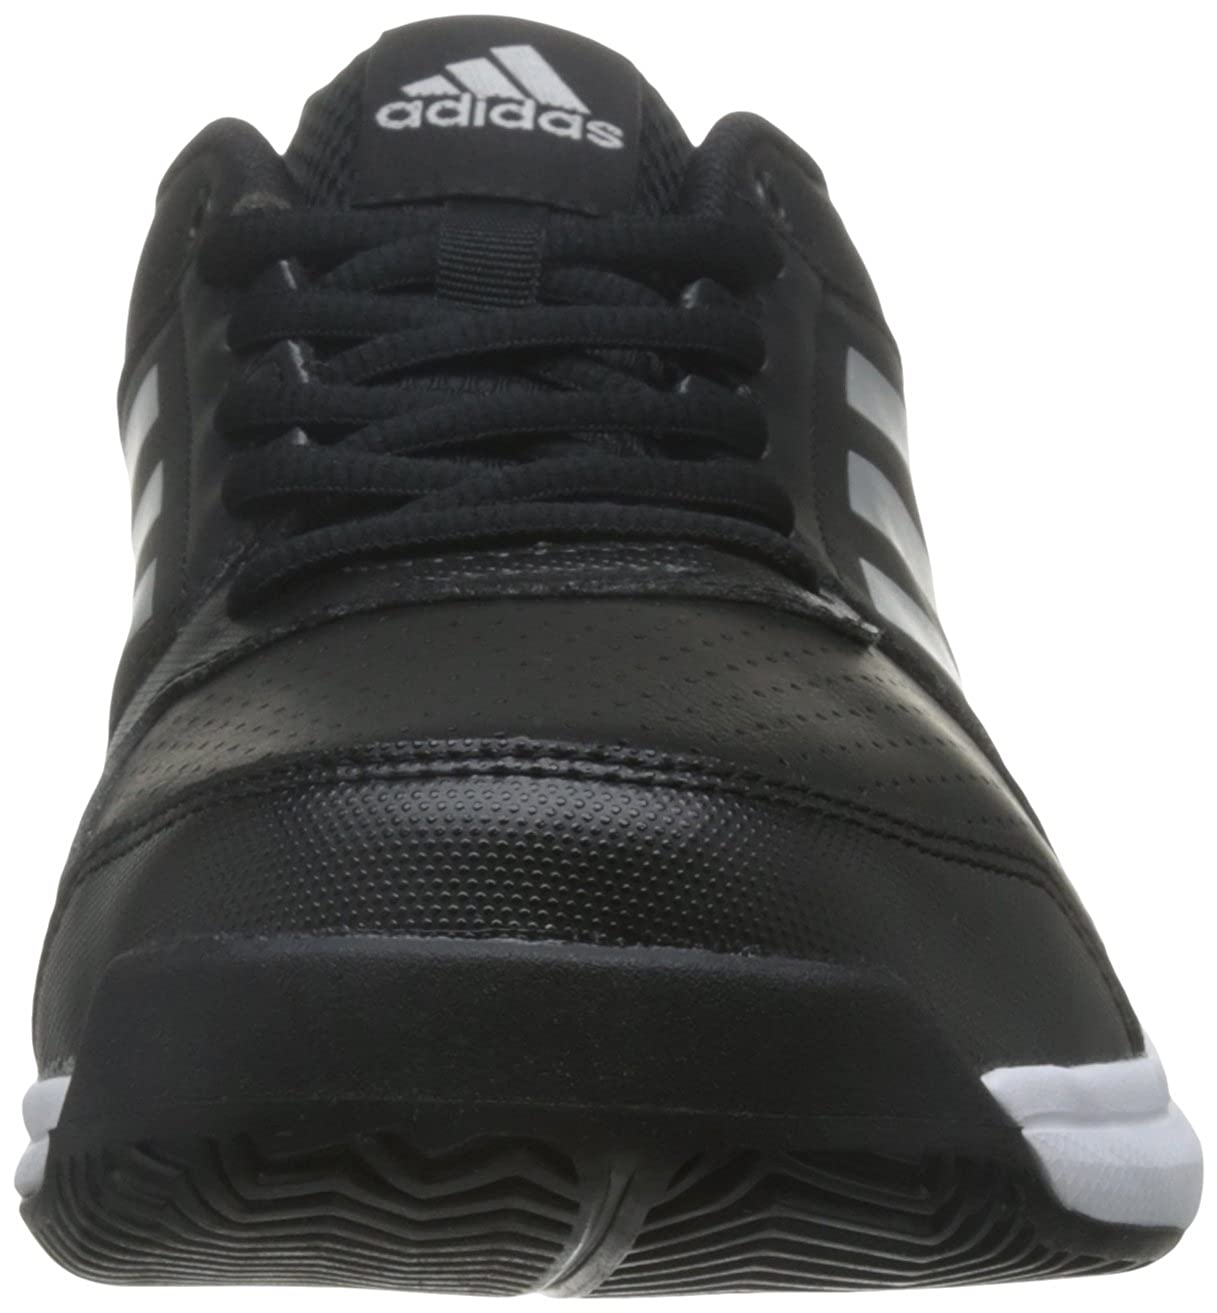 new style ccbcd 5c6d3 Adidas Men s Adizero Attack Cblack, Silvmt and Ftwwht Tennis Shoes - 11  UK India (46 EU)  Buy Online at Low Prices in India - Amazon.in